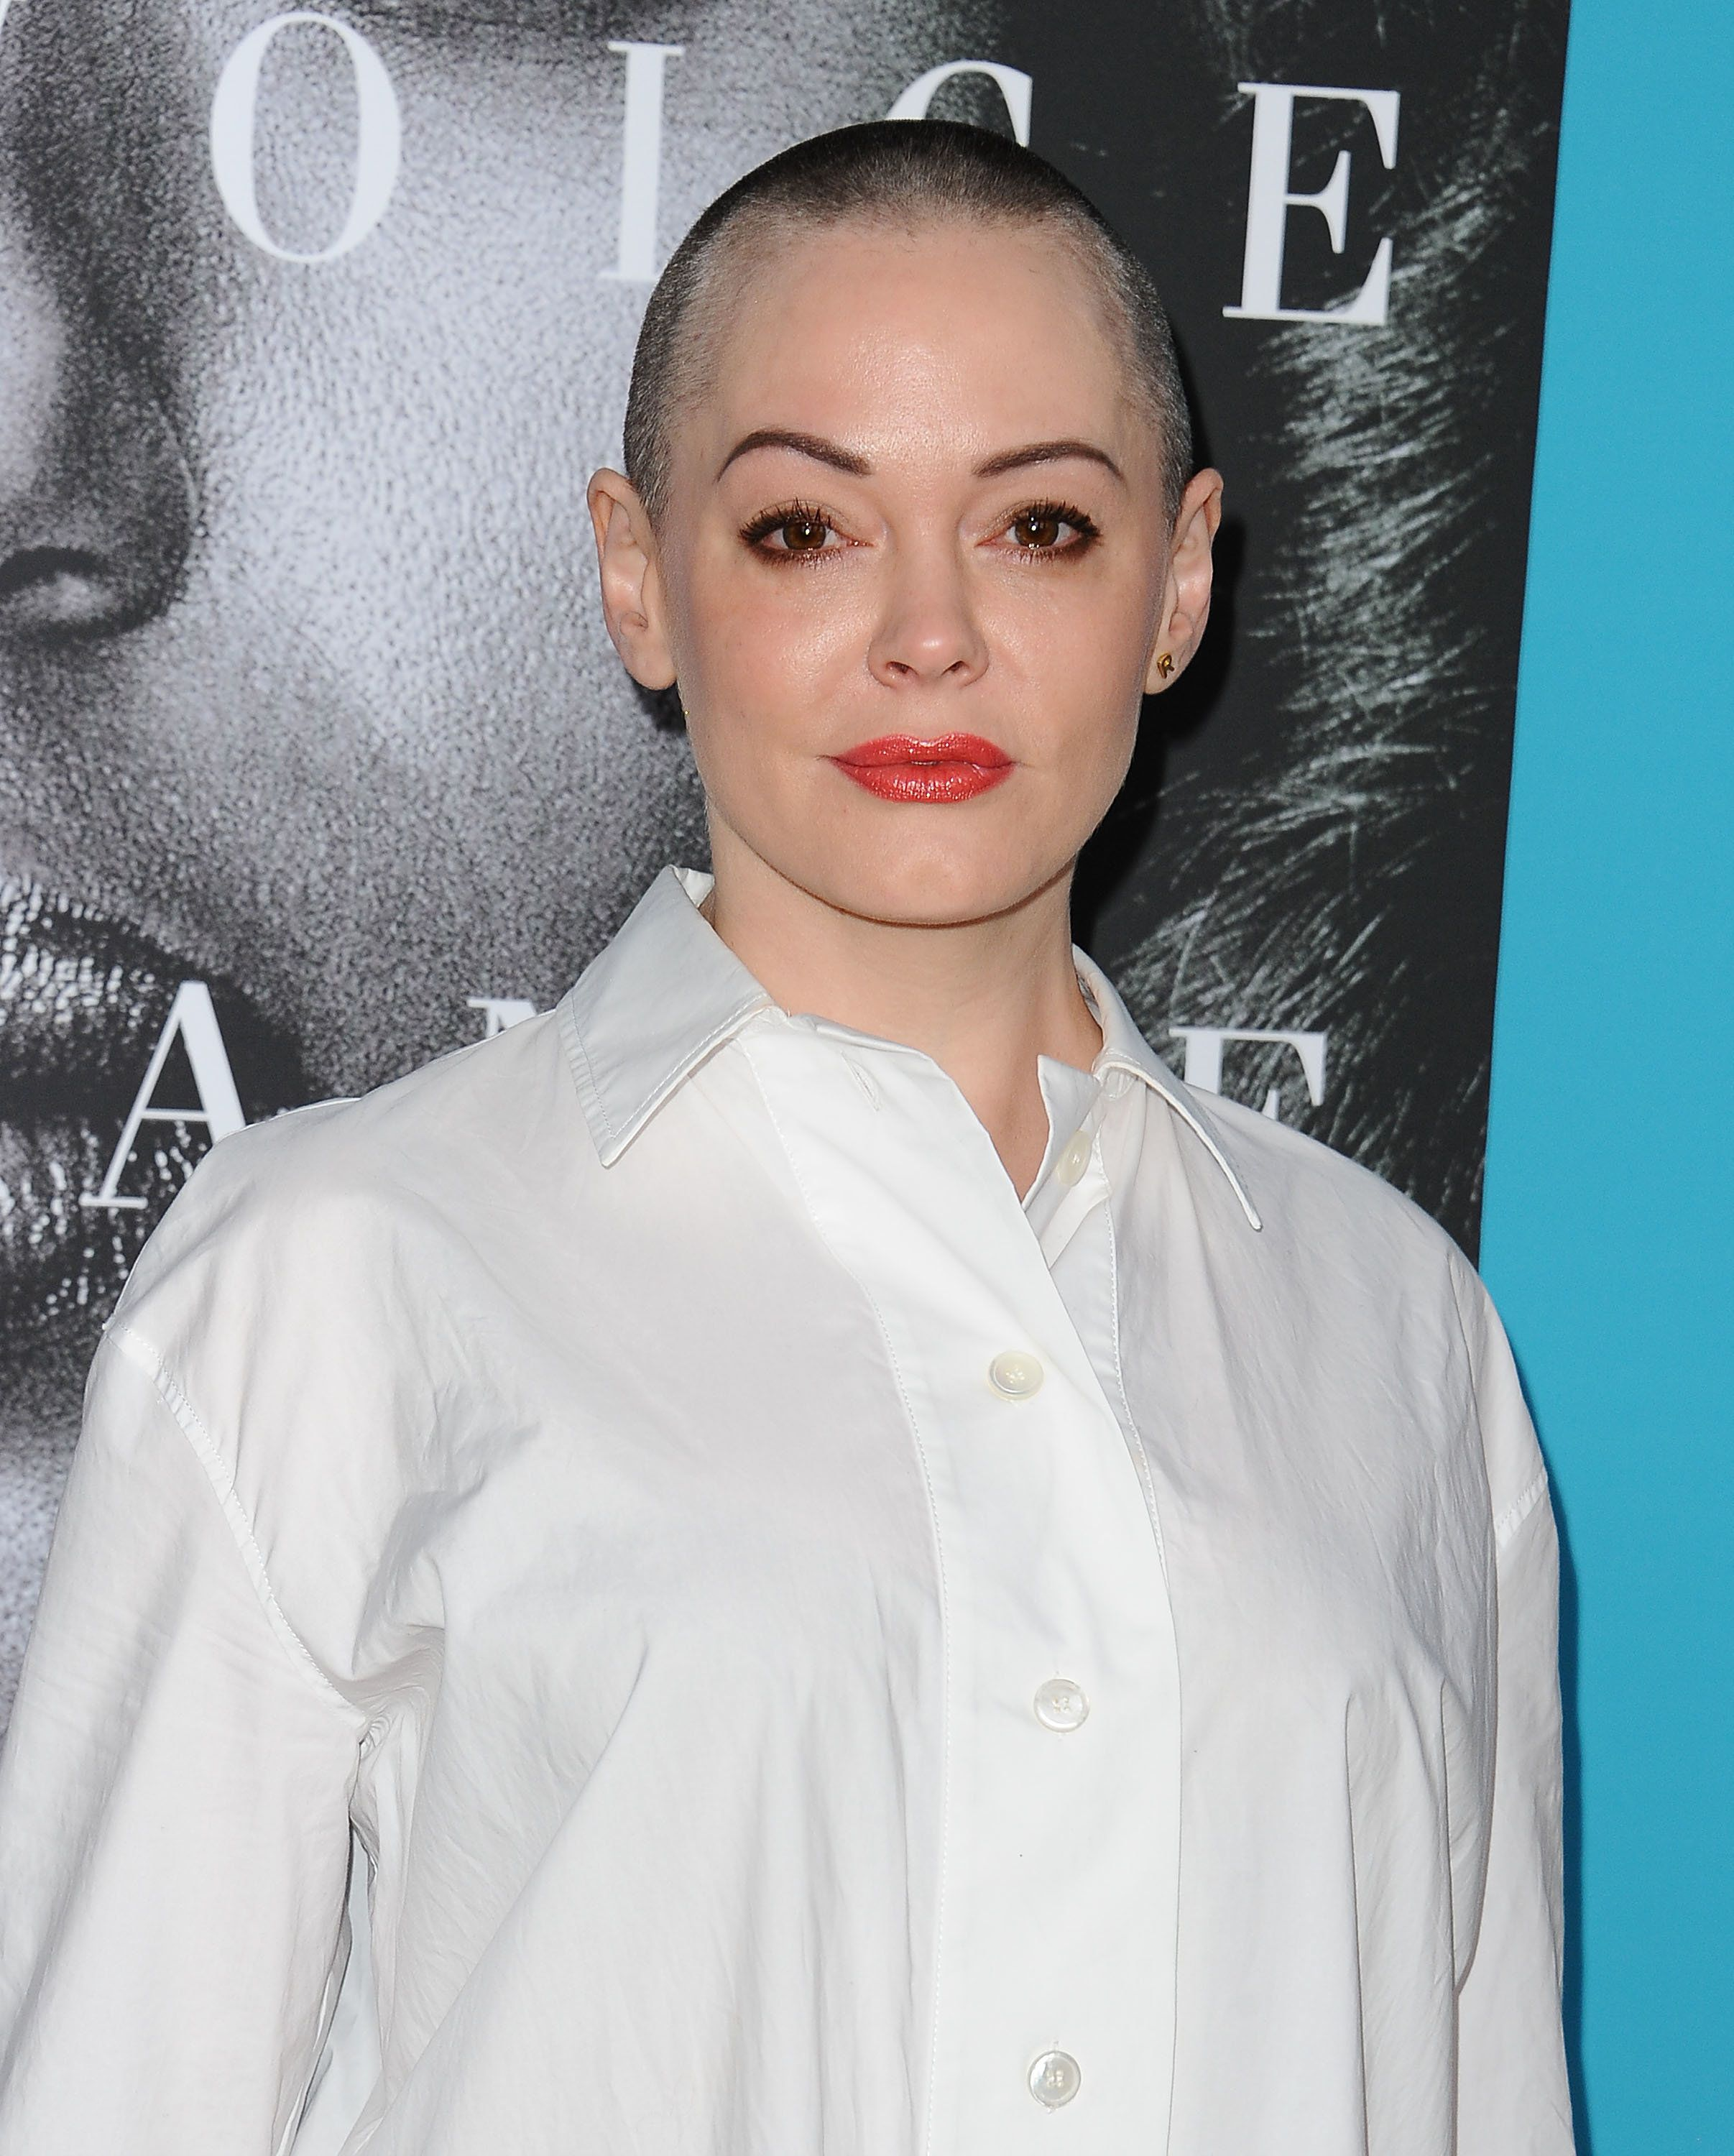 Twitter Suspended Rose McGowan for Speaking Out Against Harvey Weinstein